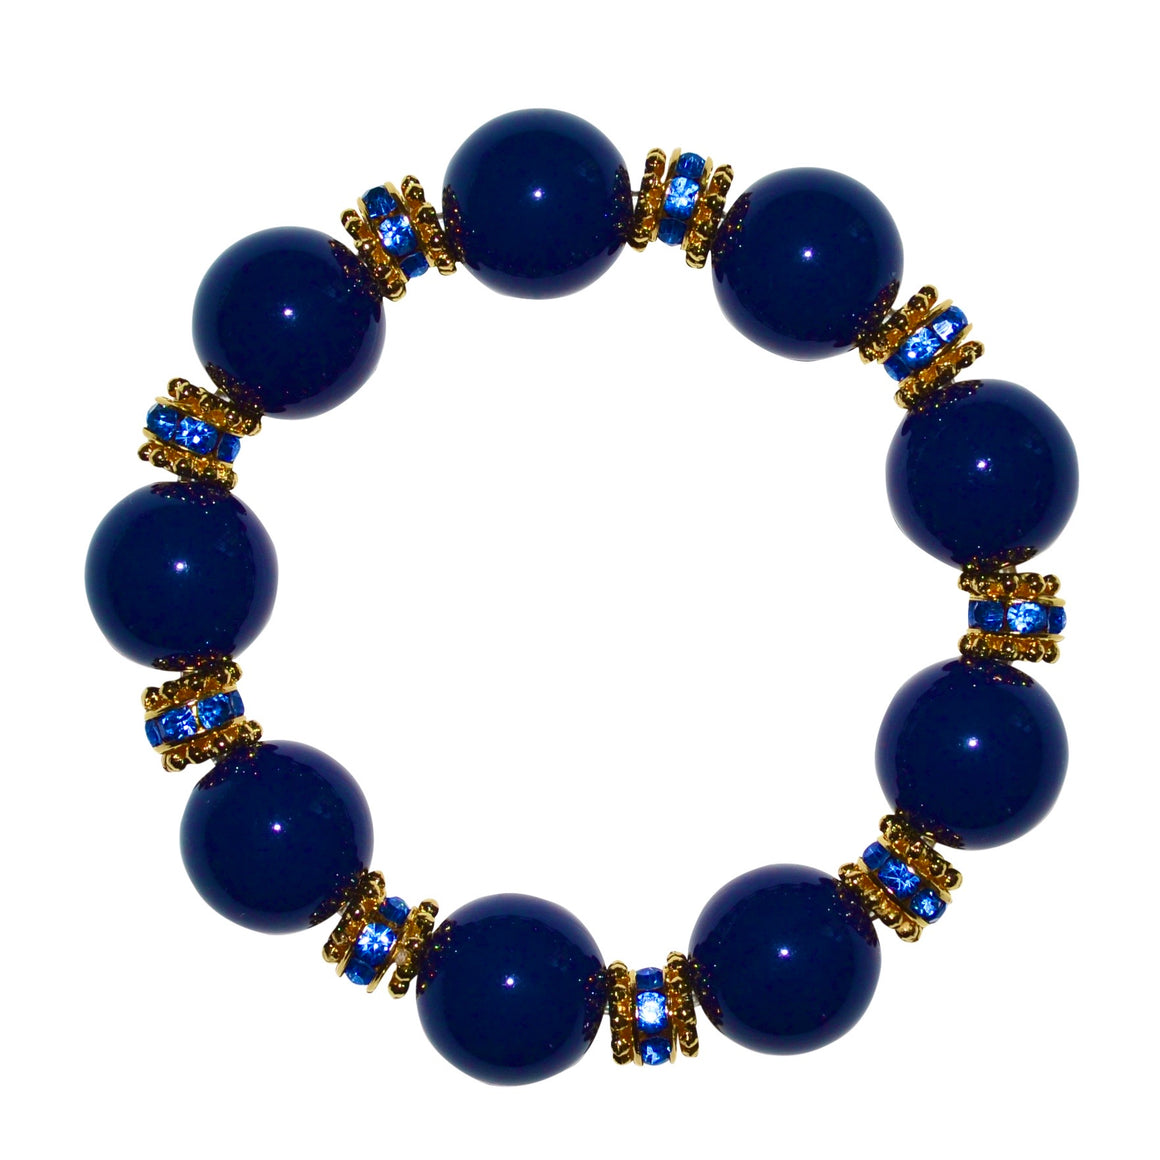 ANYTIME BANGLE IN NAVY BLUE